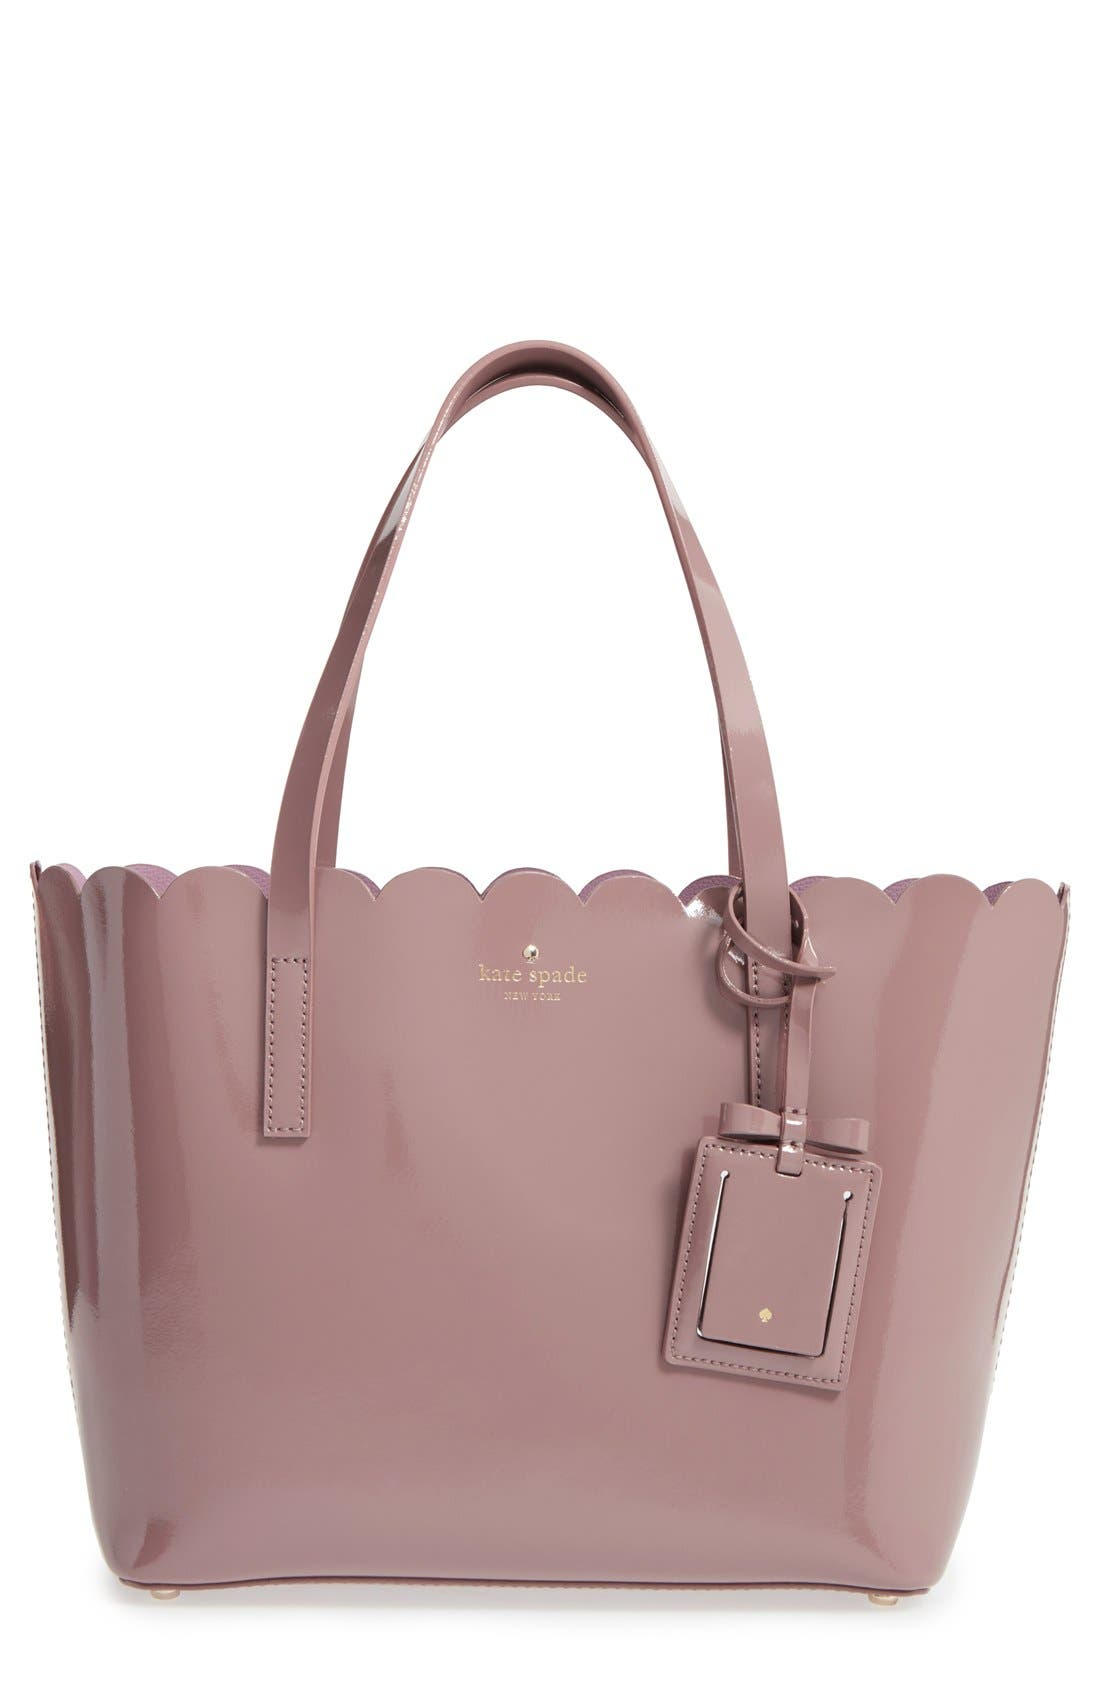 Alternate Image 1 Selected - kate spade new york 'lily avenue patent - small carrigan' leather tote